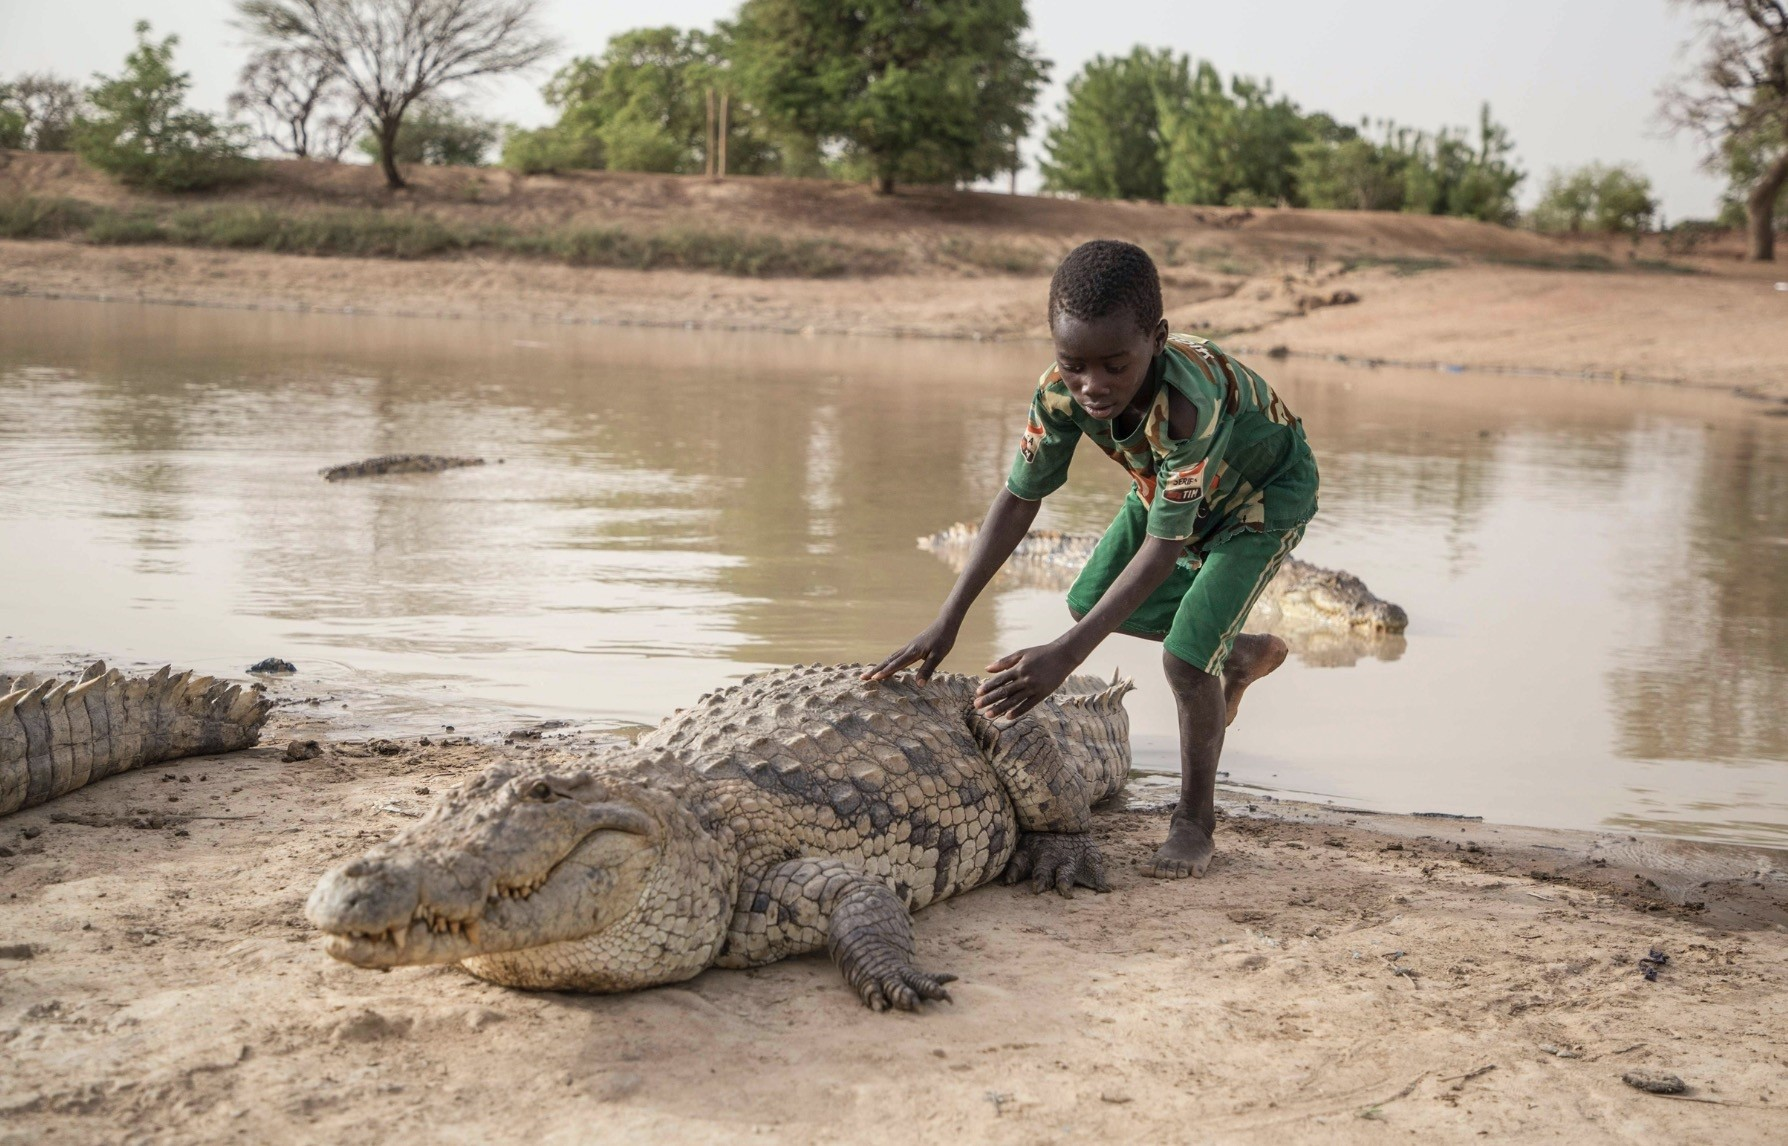 A boy leans on the back of a crocodile at a pond in Bazoule in Burkina Faso, a village which happily shares its local pond with u2018sacredu2019 crocodiles.